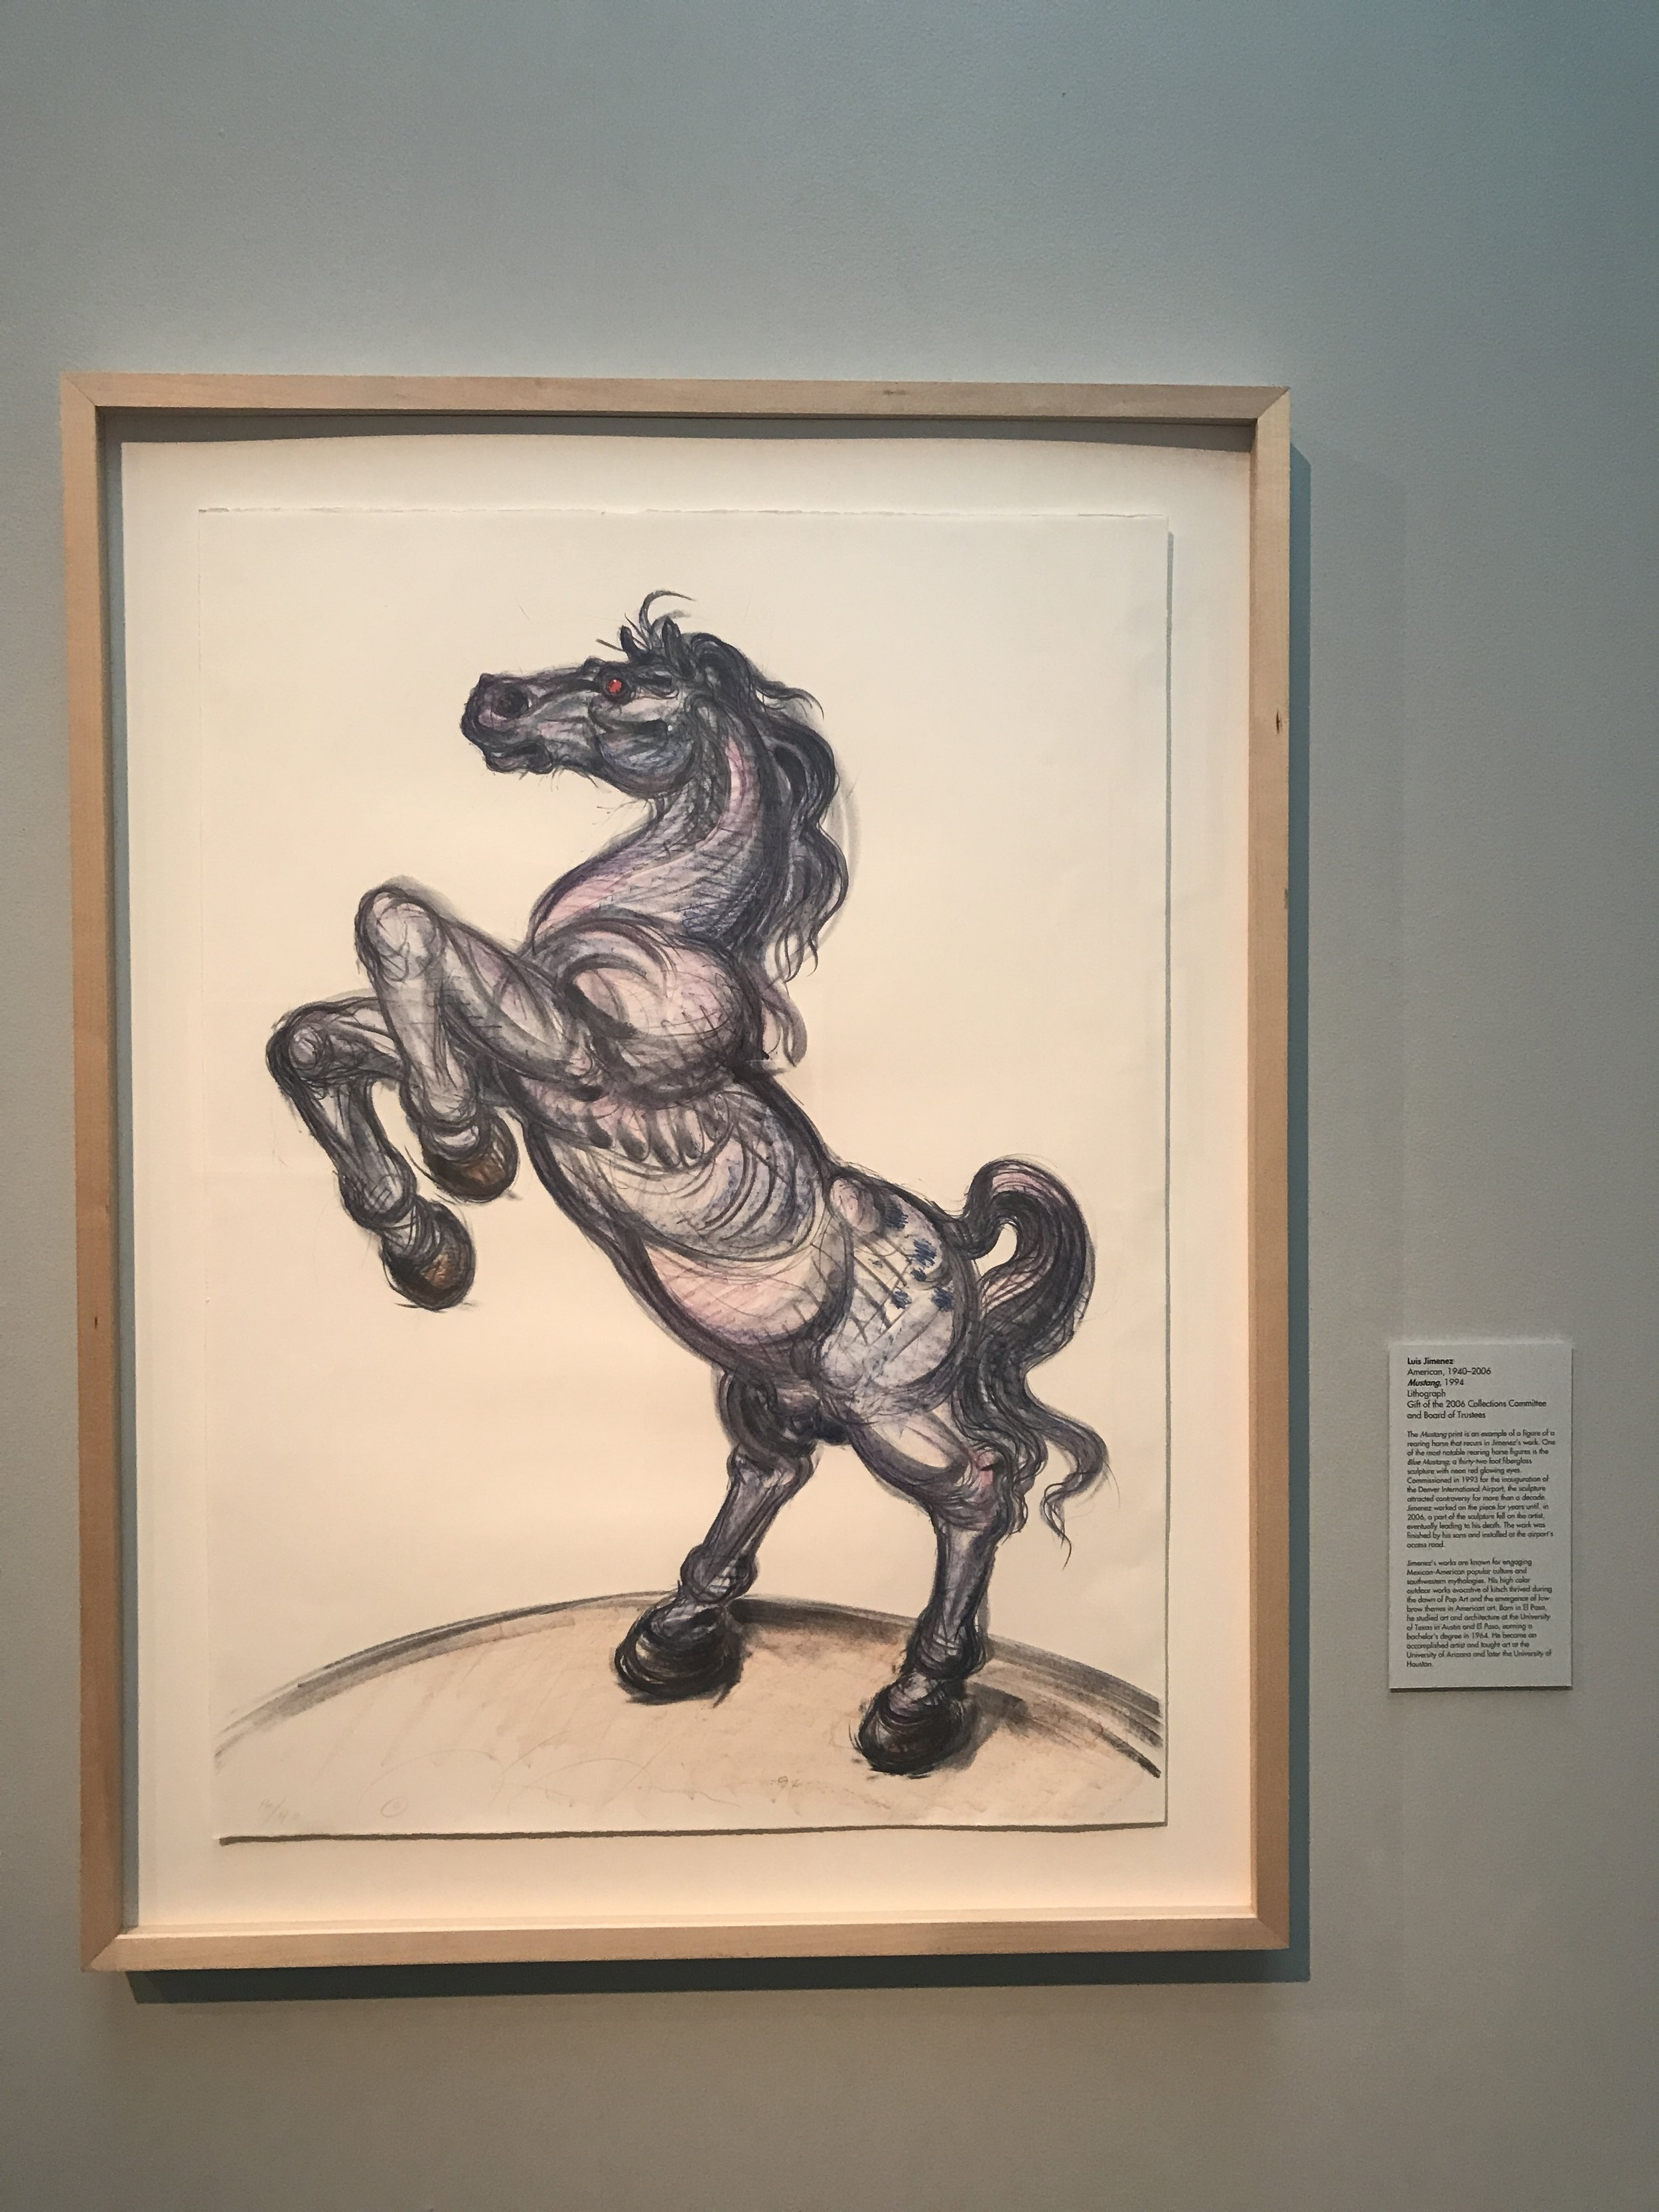 Luis Jimenez (American, 1940–2006),  Mustang , 1994, Lithograph, Gift of the 2006 Collections Committee and Board of Trustees.